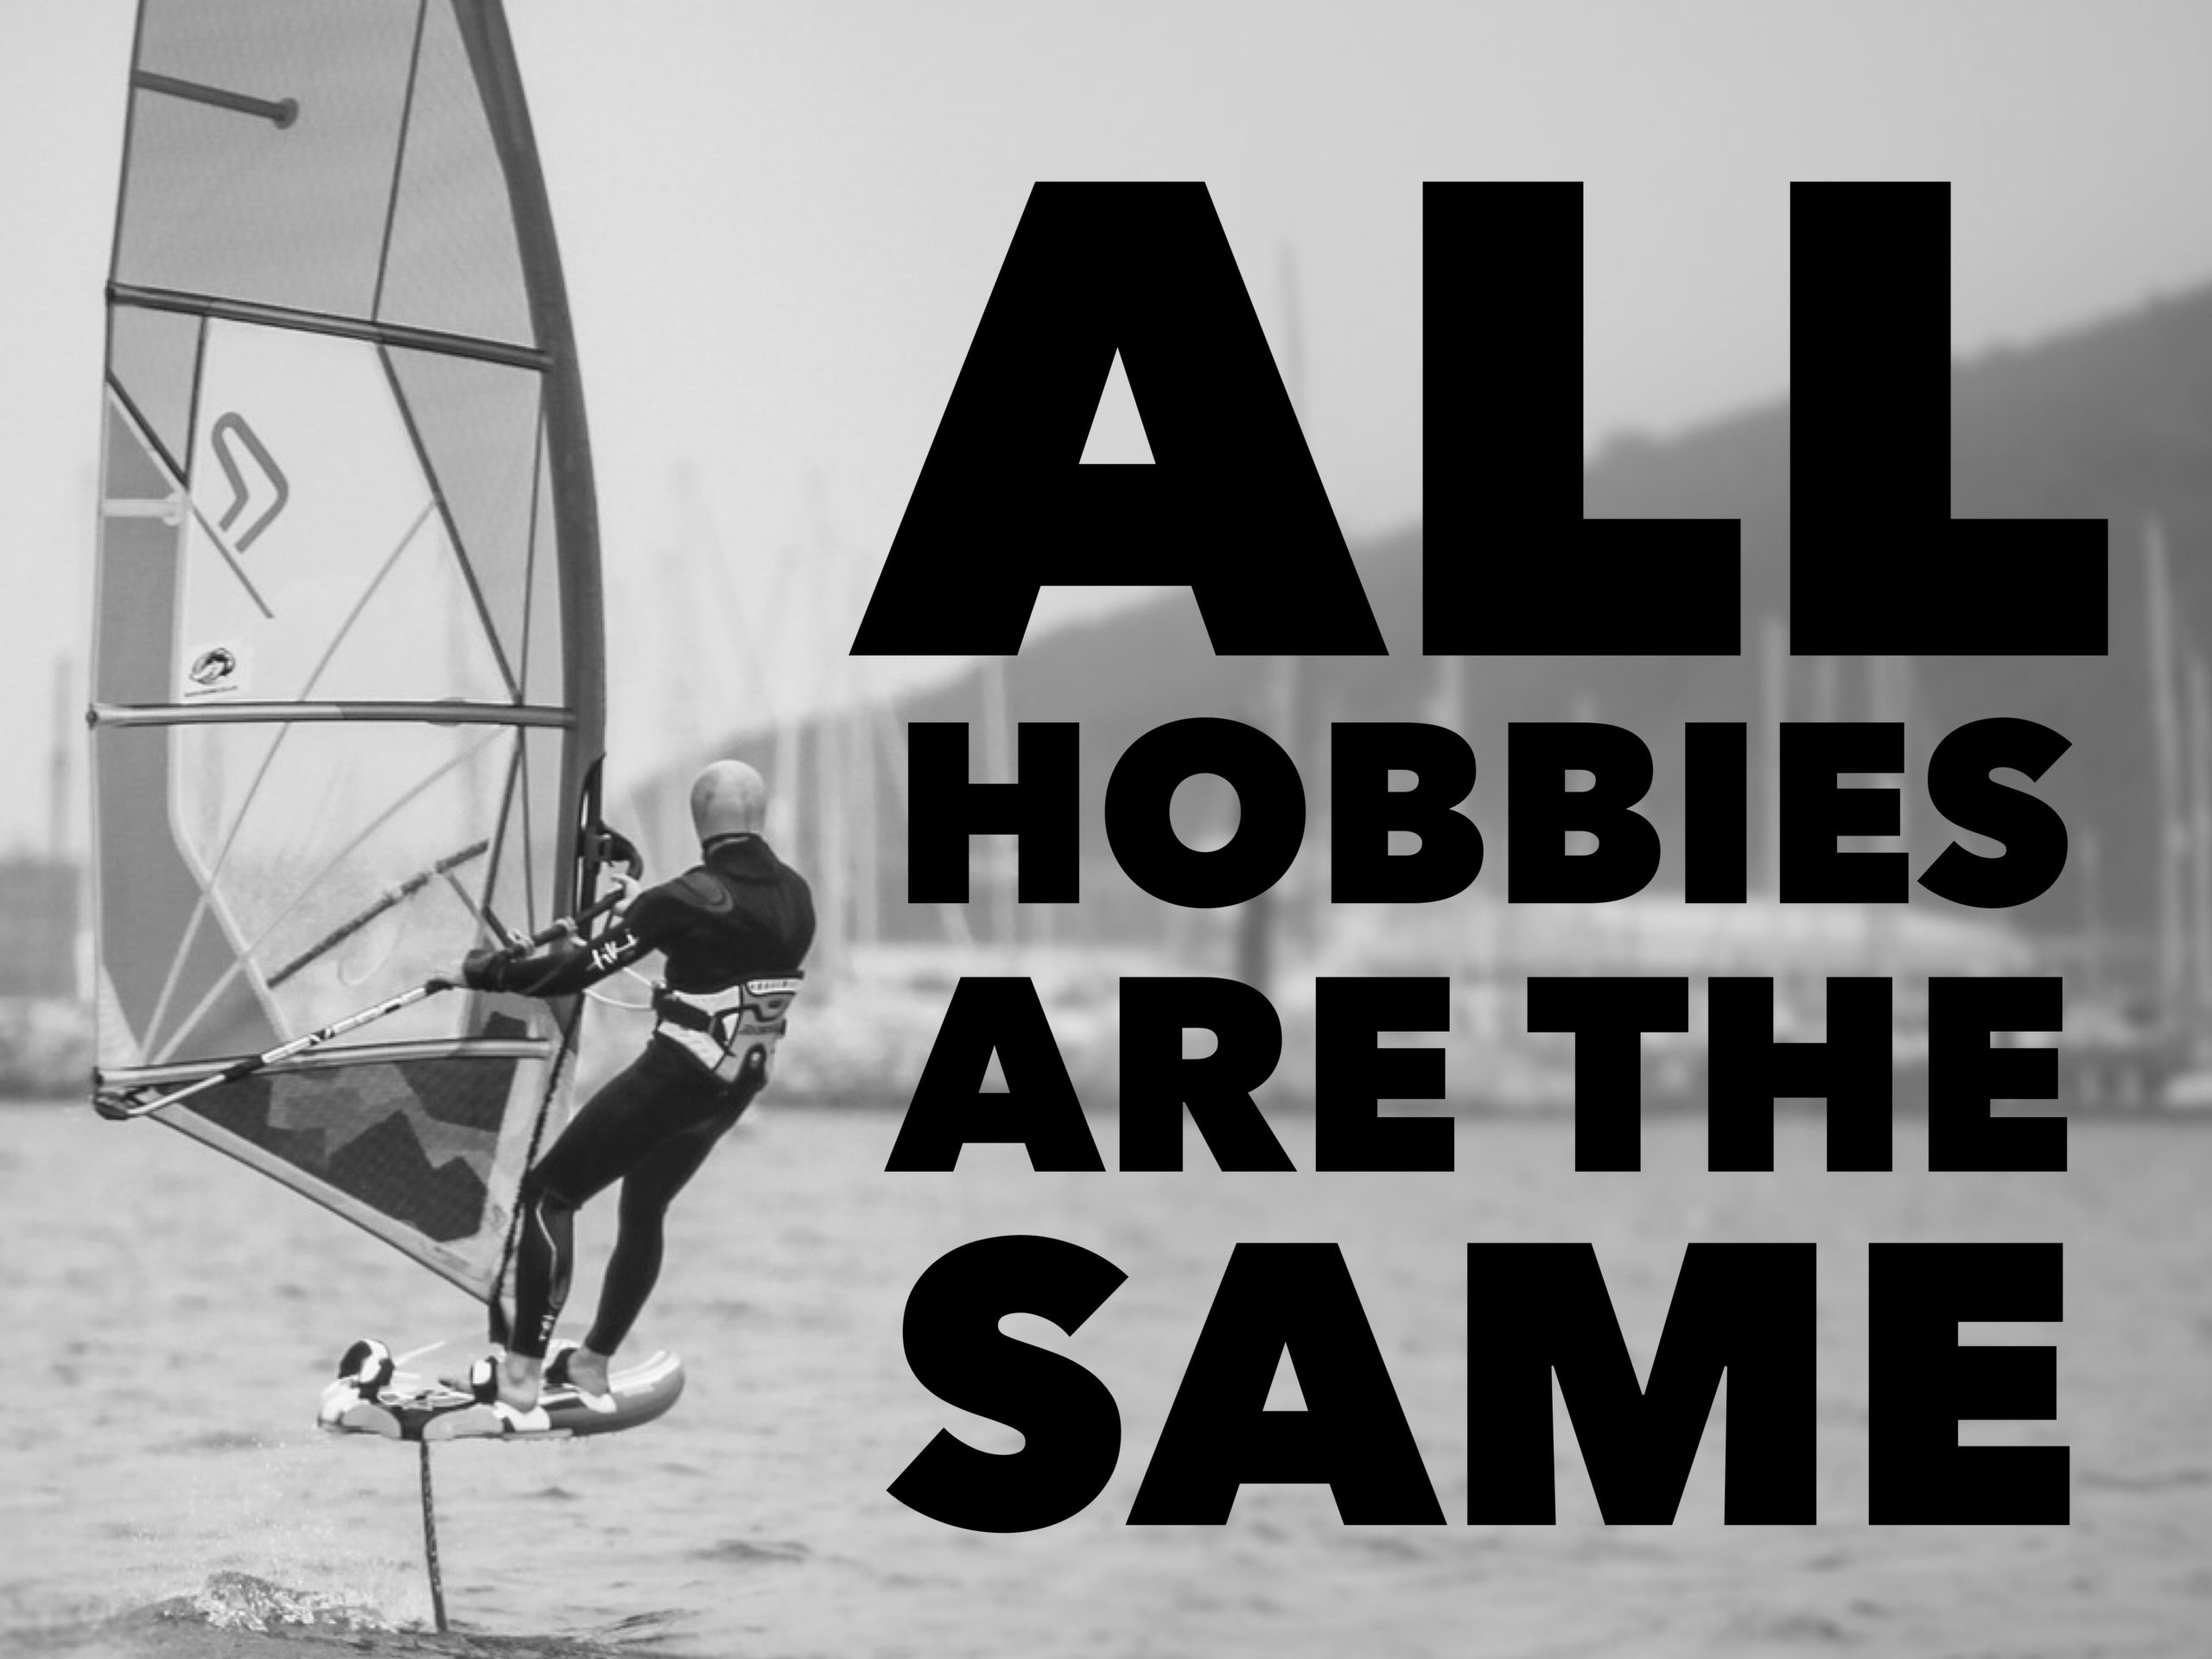 All Different Hobbies Are The Same.